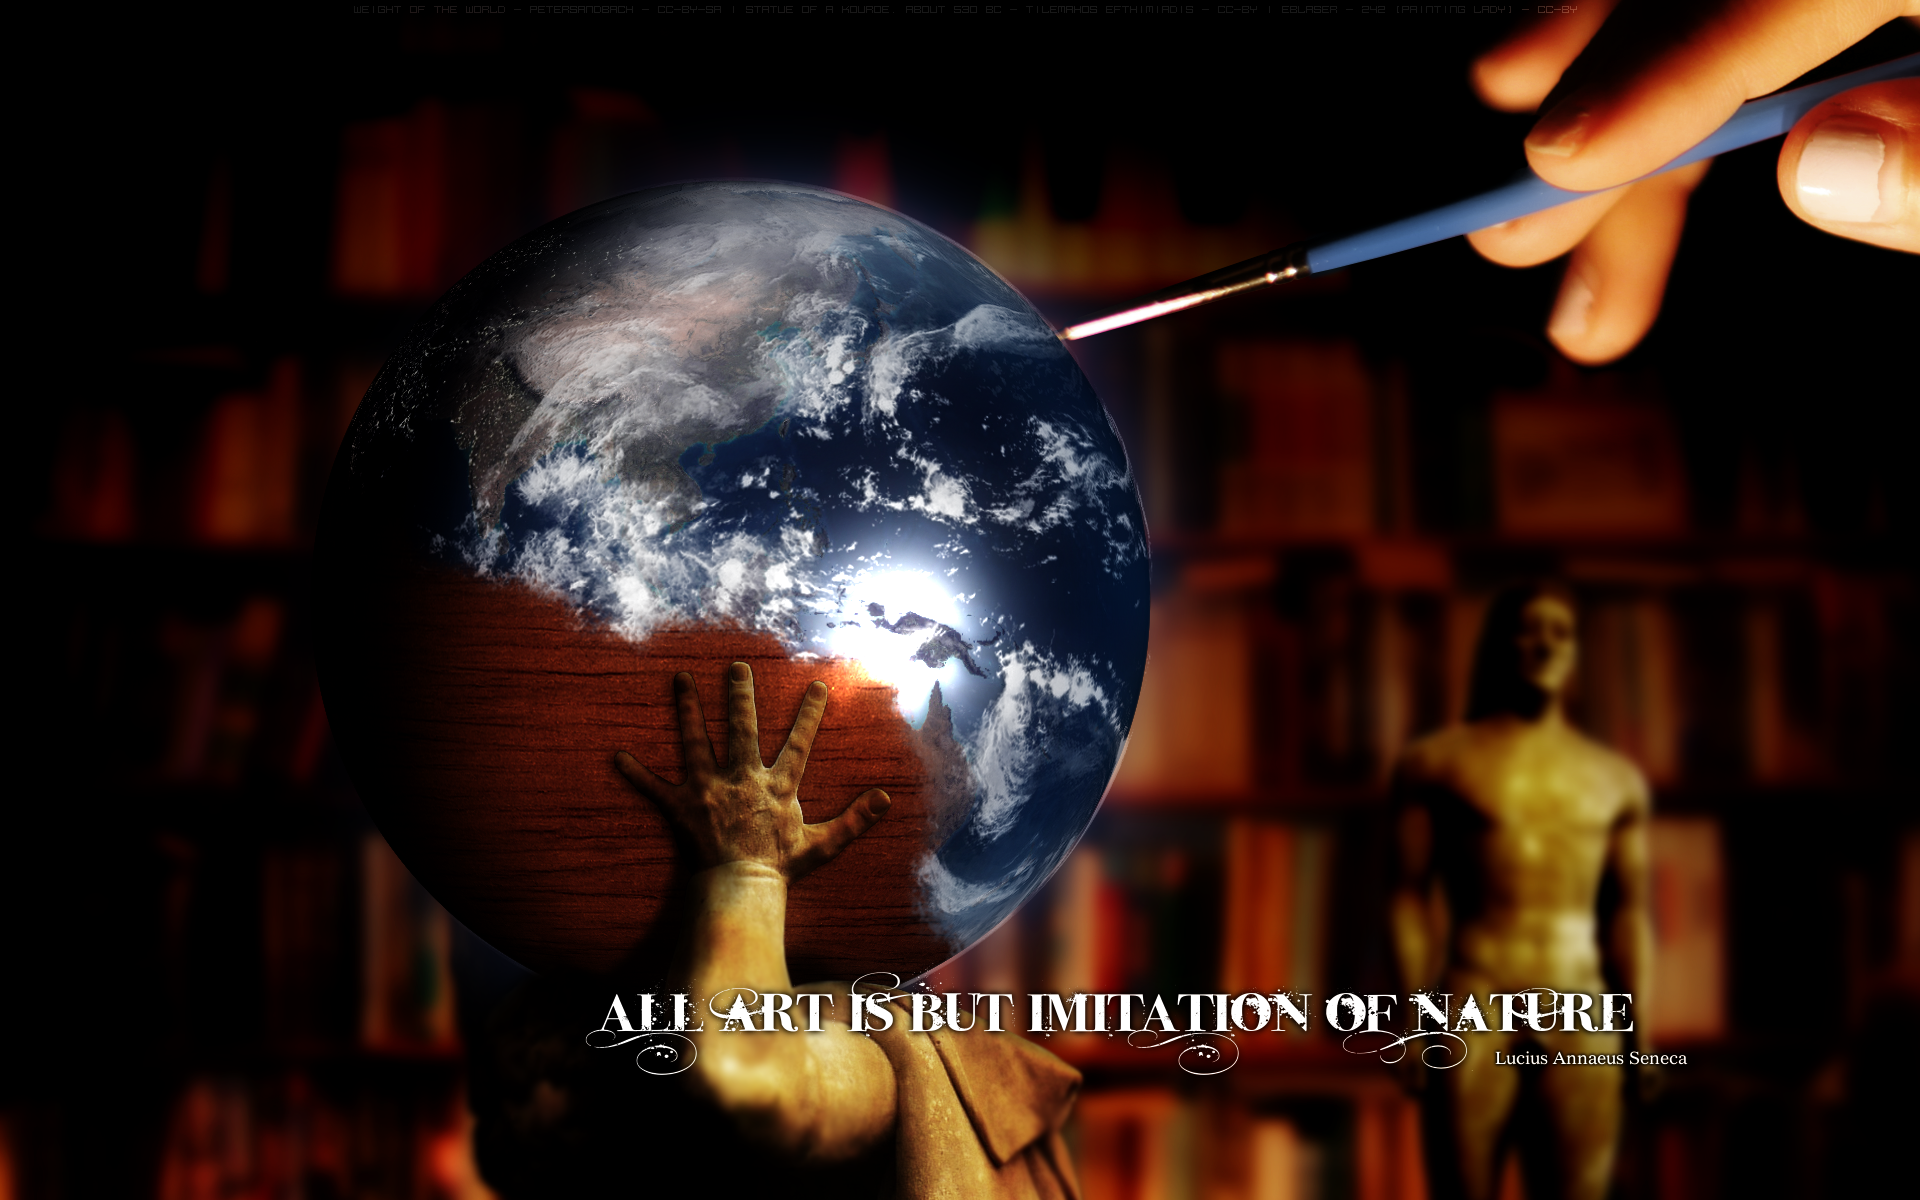 all art is but imitation of